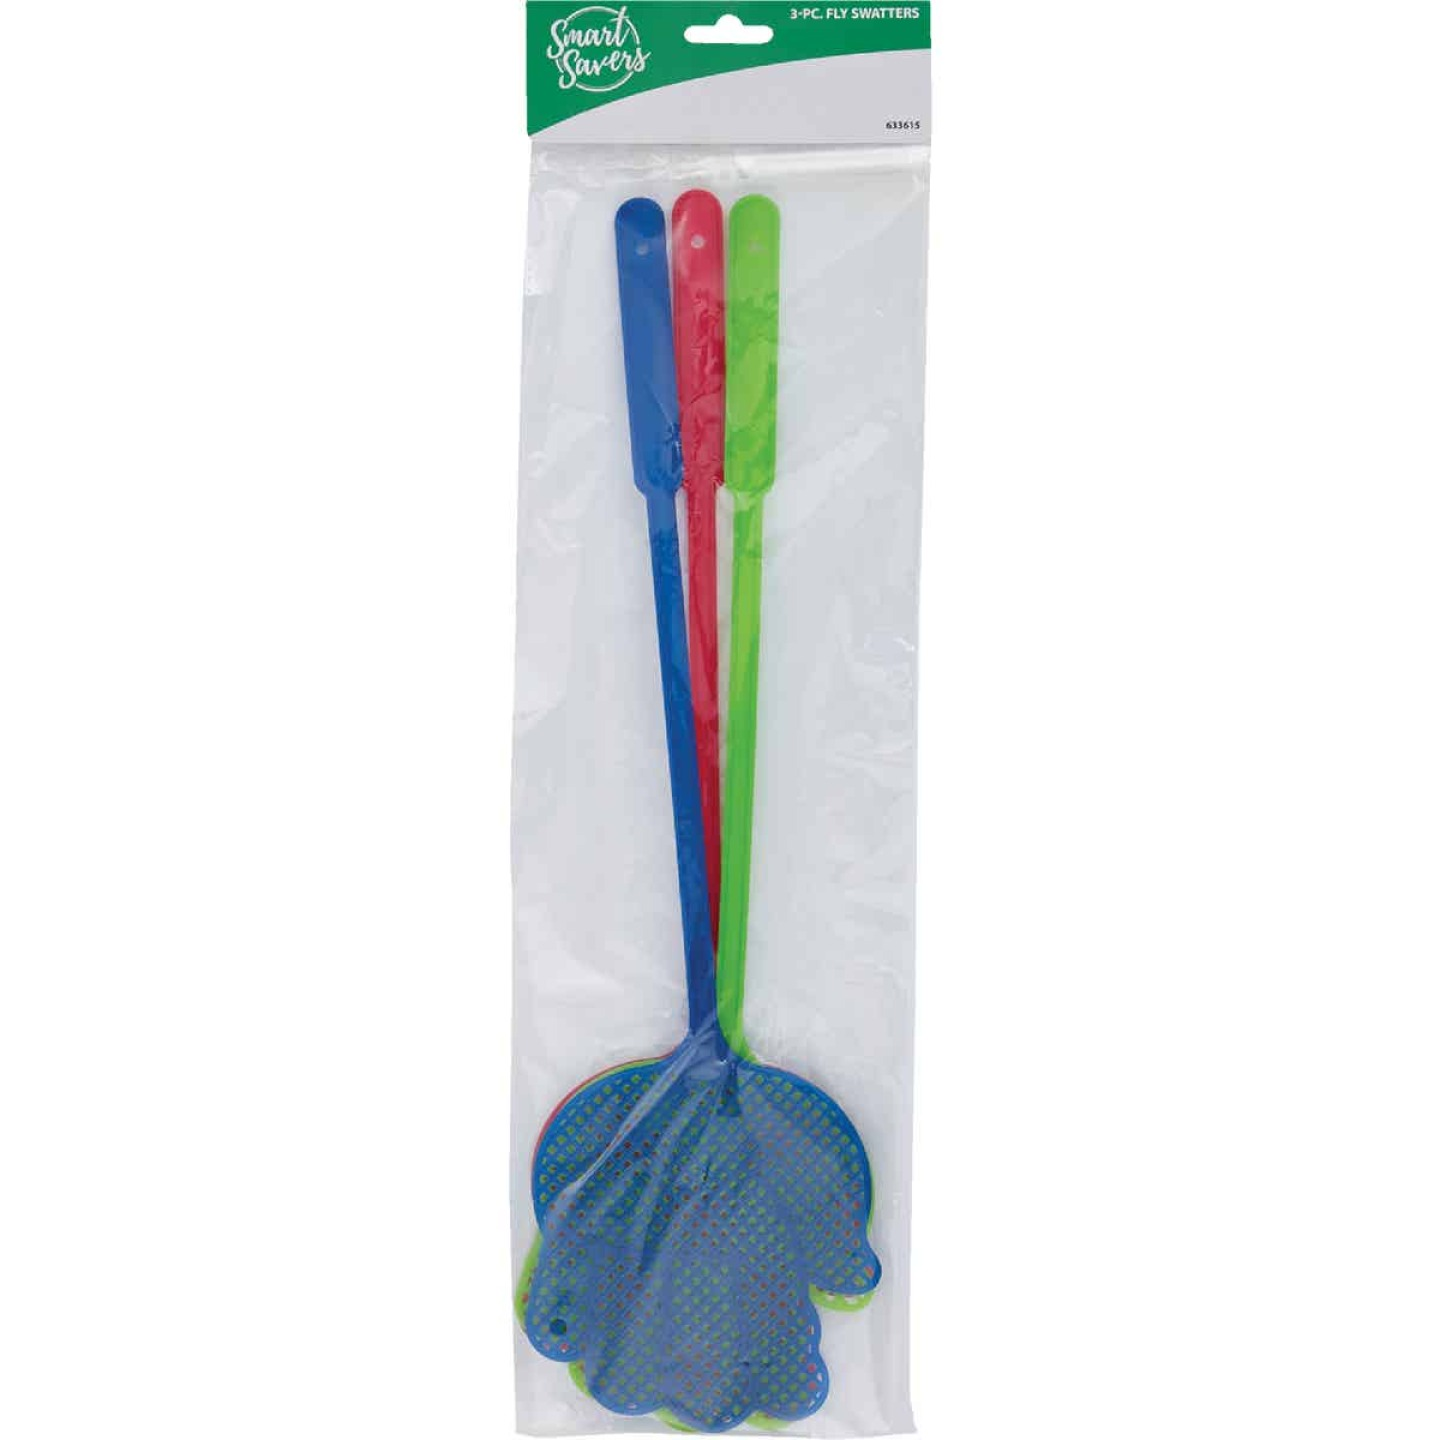 Smart Savers 5 In. x 4.7 In. Plastic Fly Swatter (3-Pack) Image 2